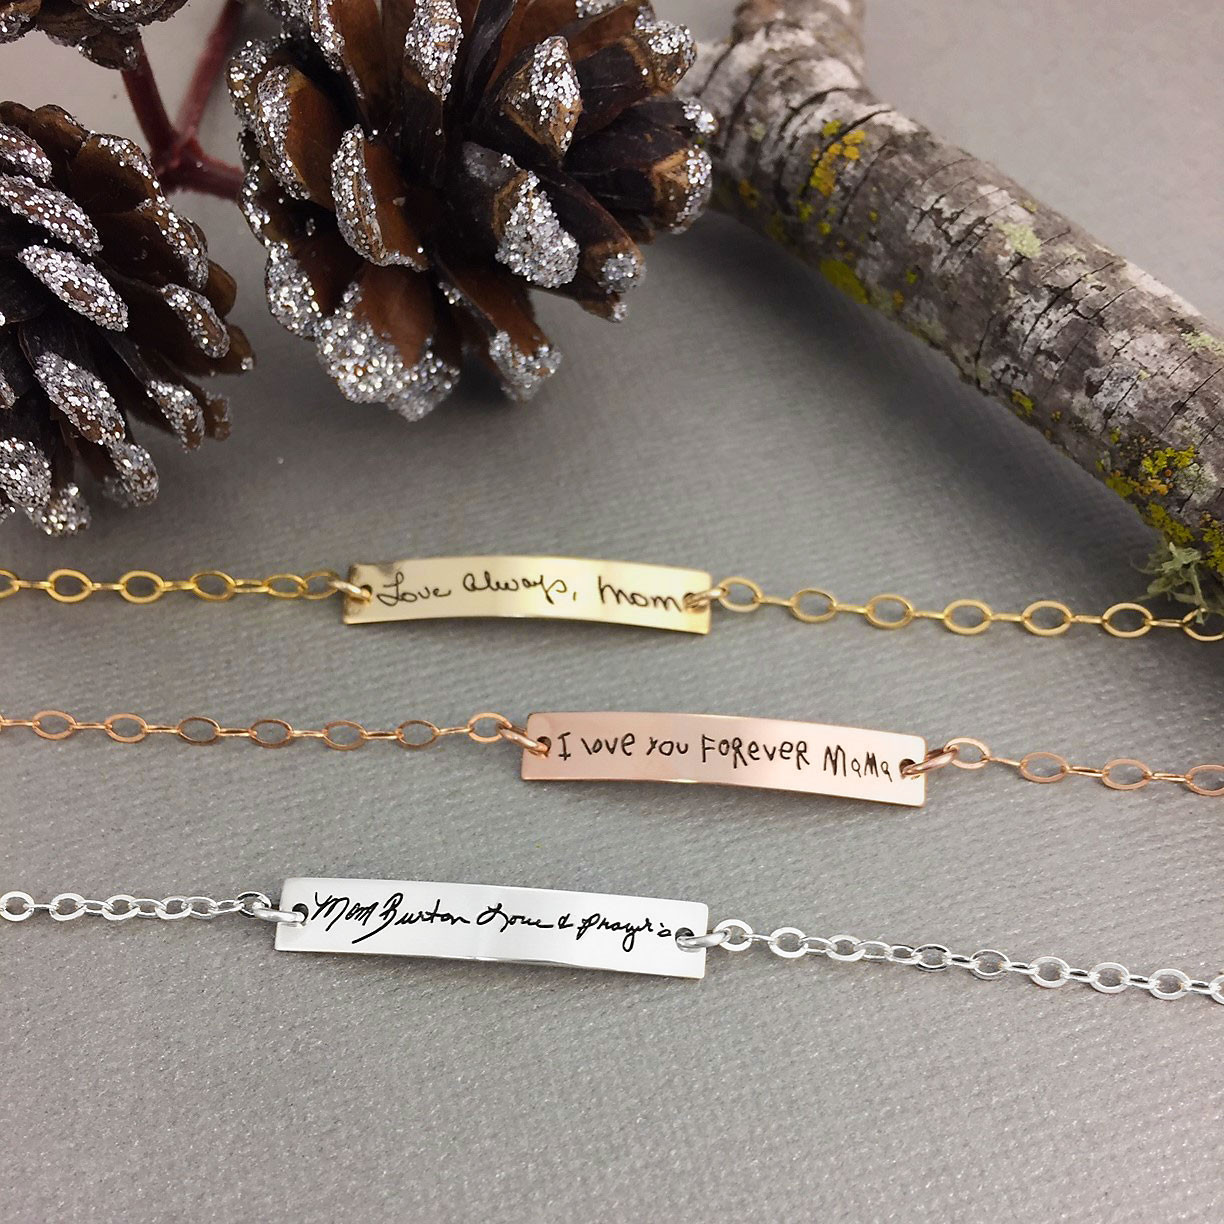 Dainty bracelet with your actual writing in rose gold, gold and silver